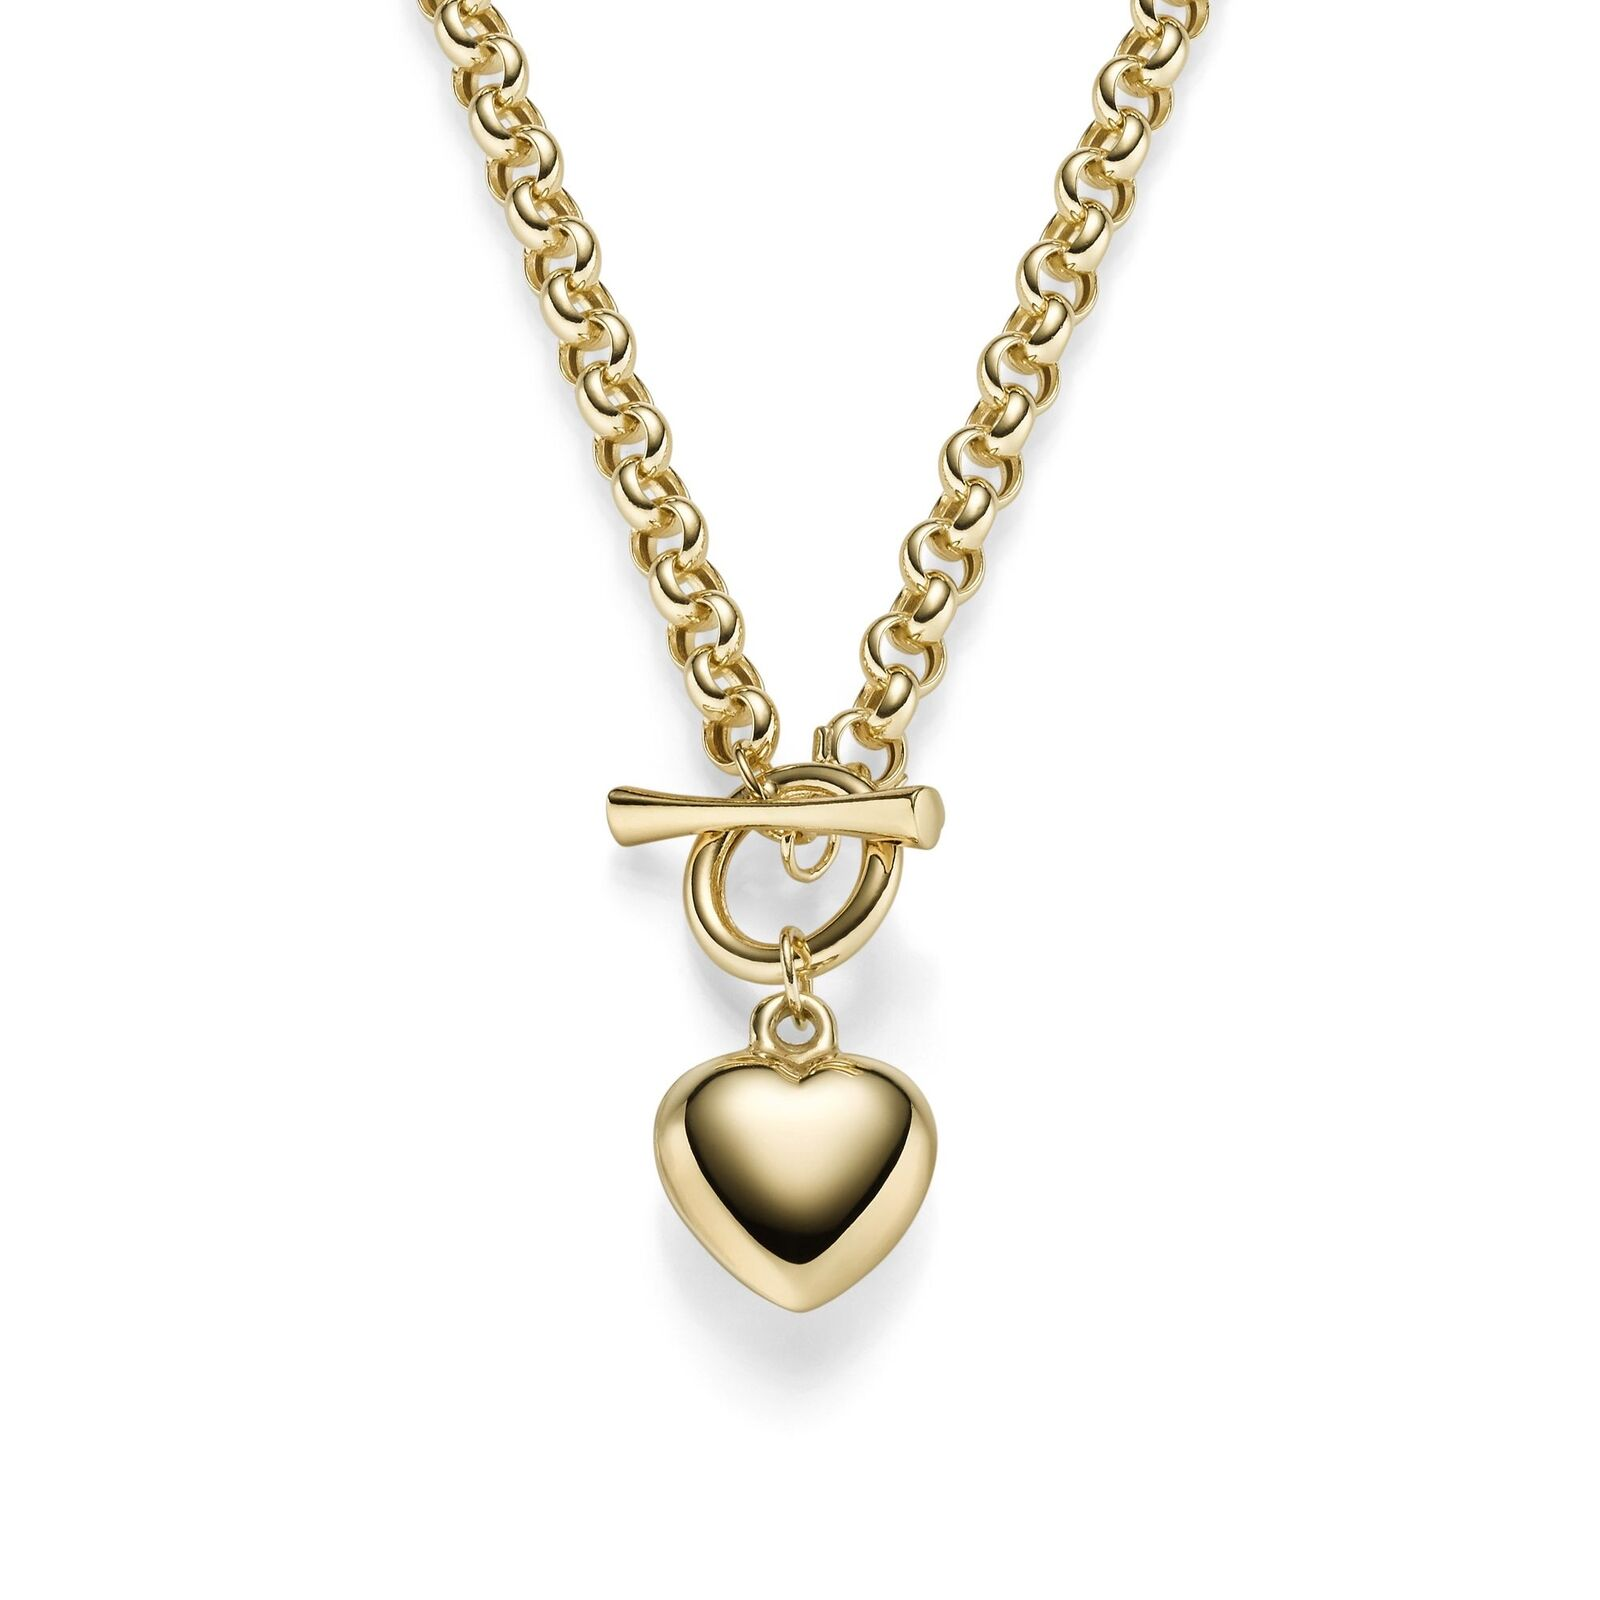 0 7 32in Bracelet Pea Chain with Heart Pendant 585 gold Yellow Wrist Jewellery